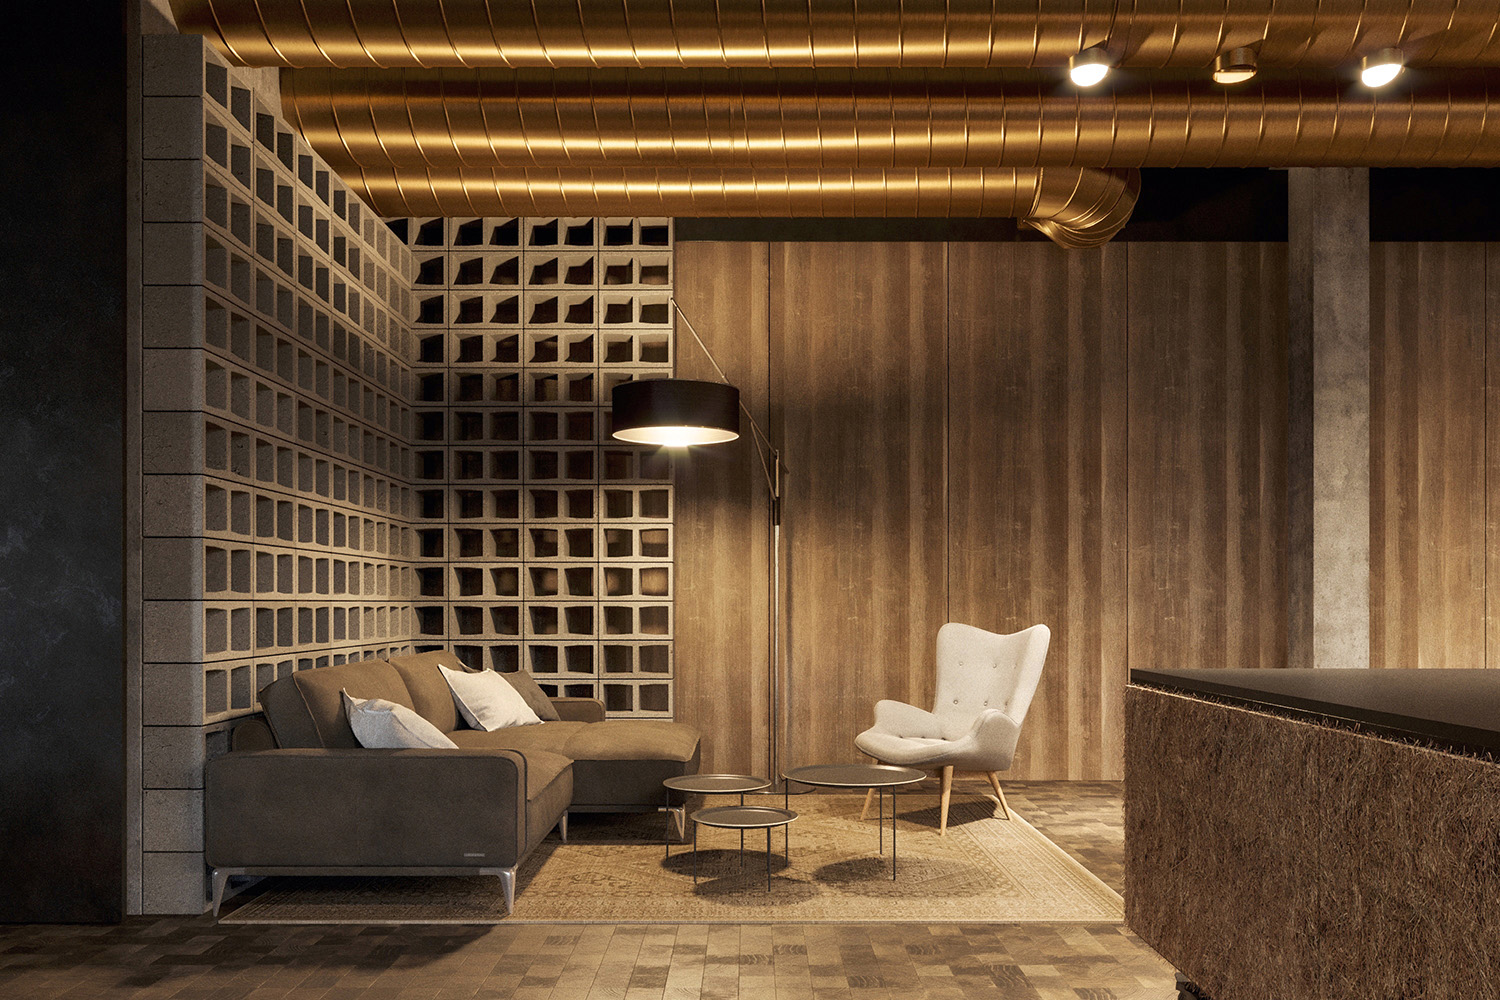 enota maestoso hotel & spa 12 Studio Spacer (visualisations)